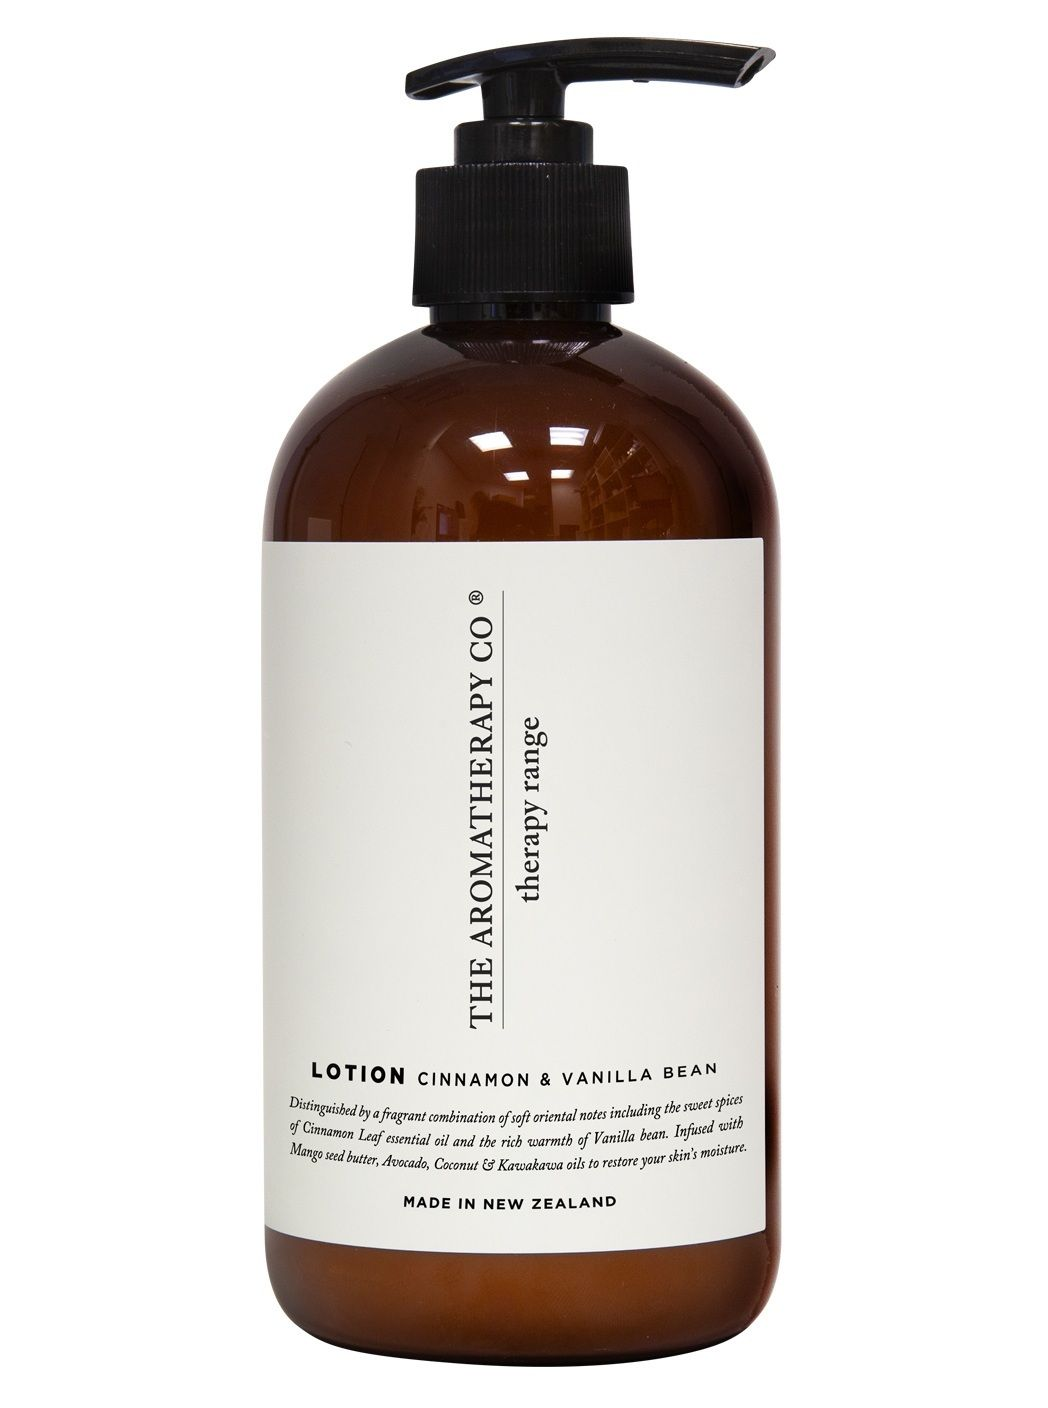 Therapy Hand & Body Lotion - Cinnamon & Vanilla Bean